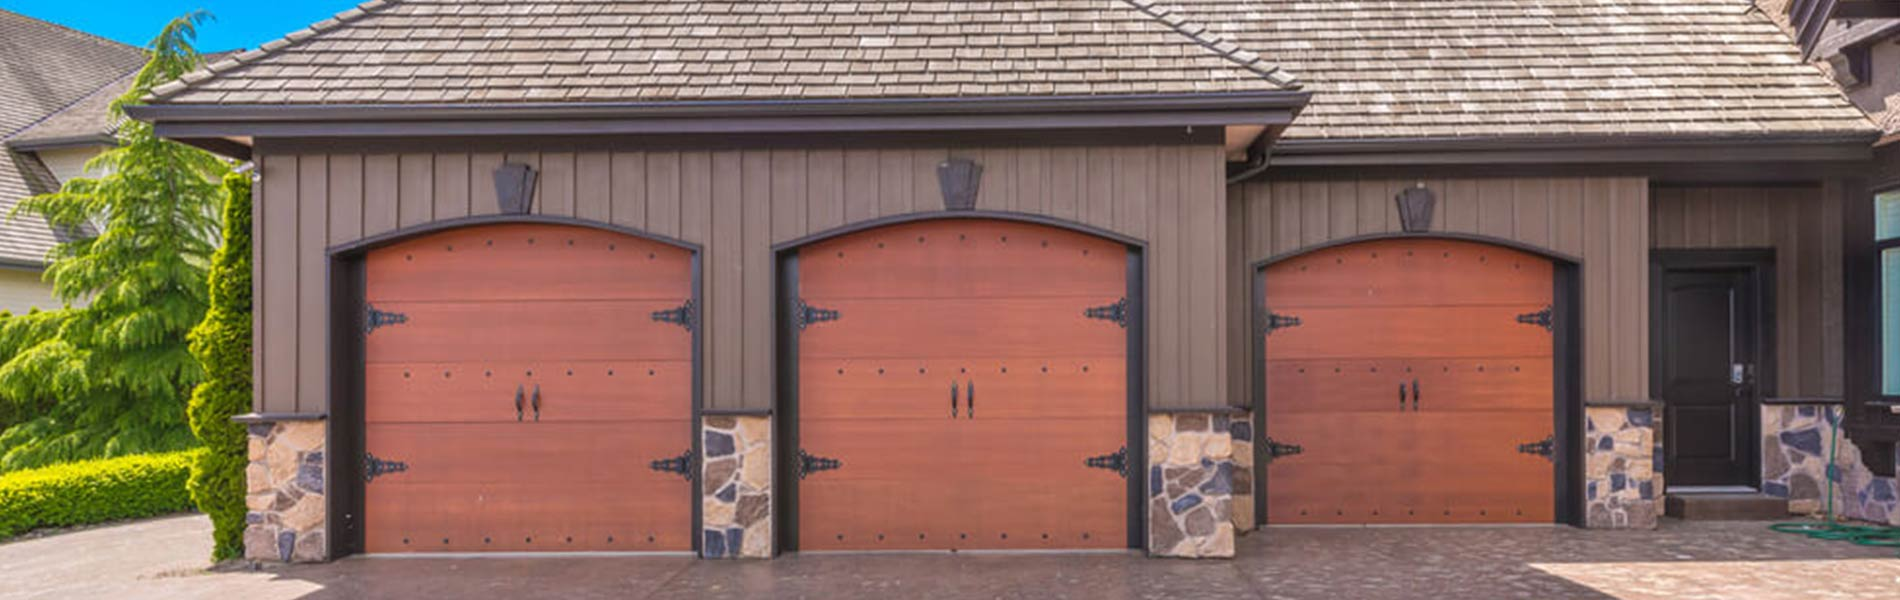 Golden Garage Door Repair Service, Birmingham, MI 248-499-1381